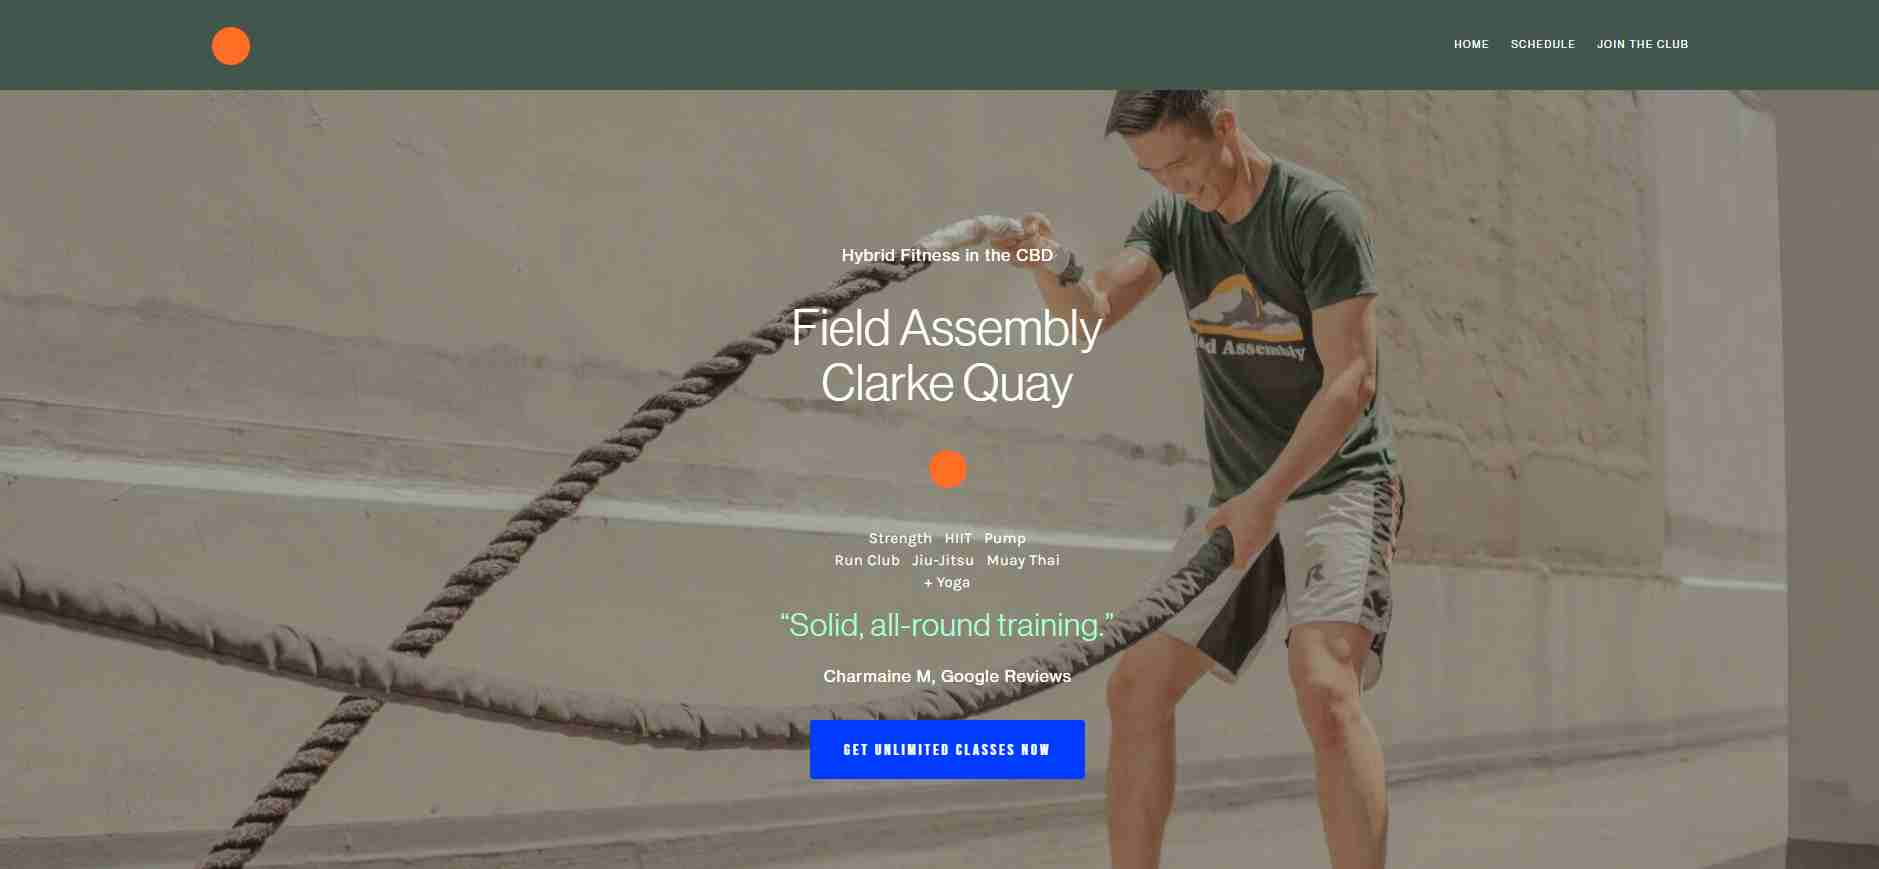 field assembly Top Strength Training Gyms in Singapore